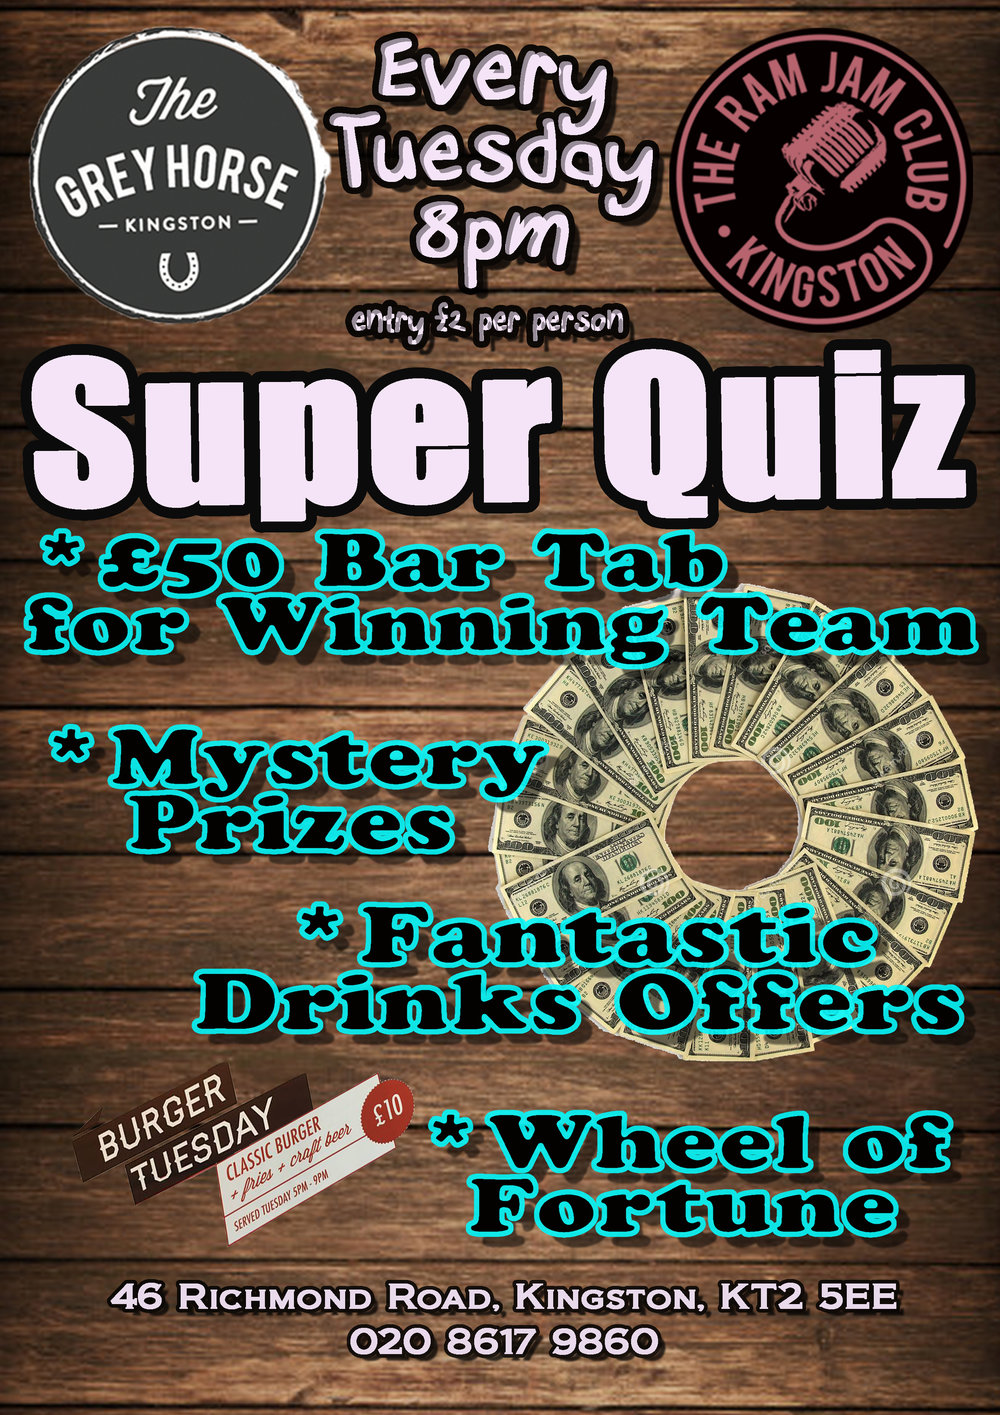 Every Tuesday from 8pm    £50 Bar tab for the winning team    Wheel of fortune, spot prizes to be won